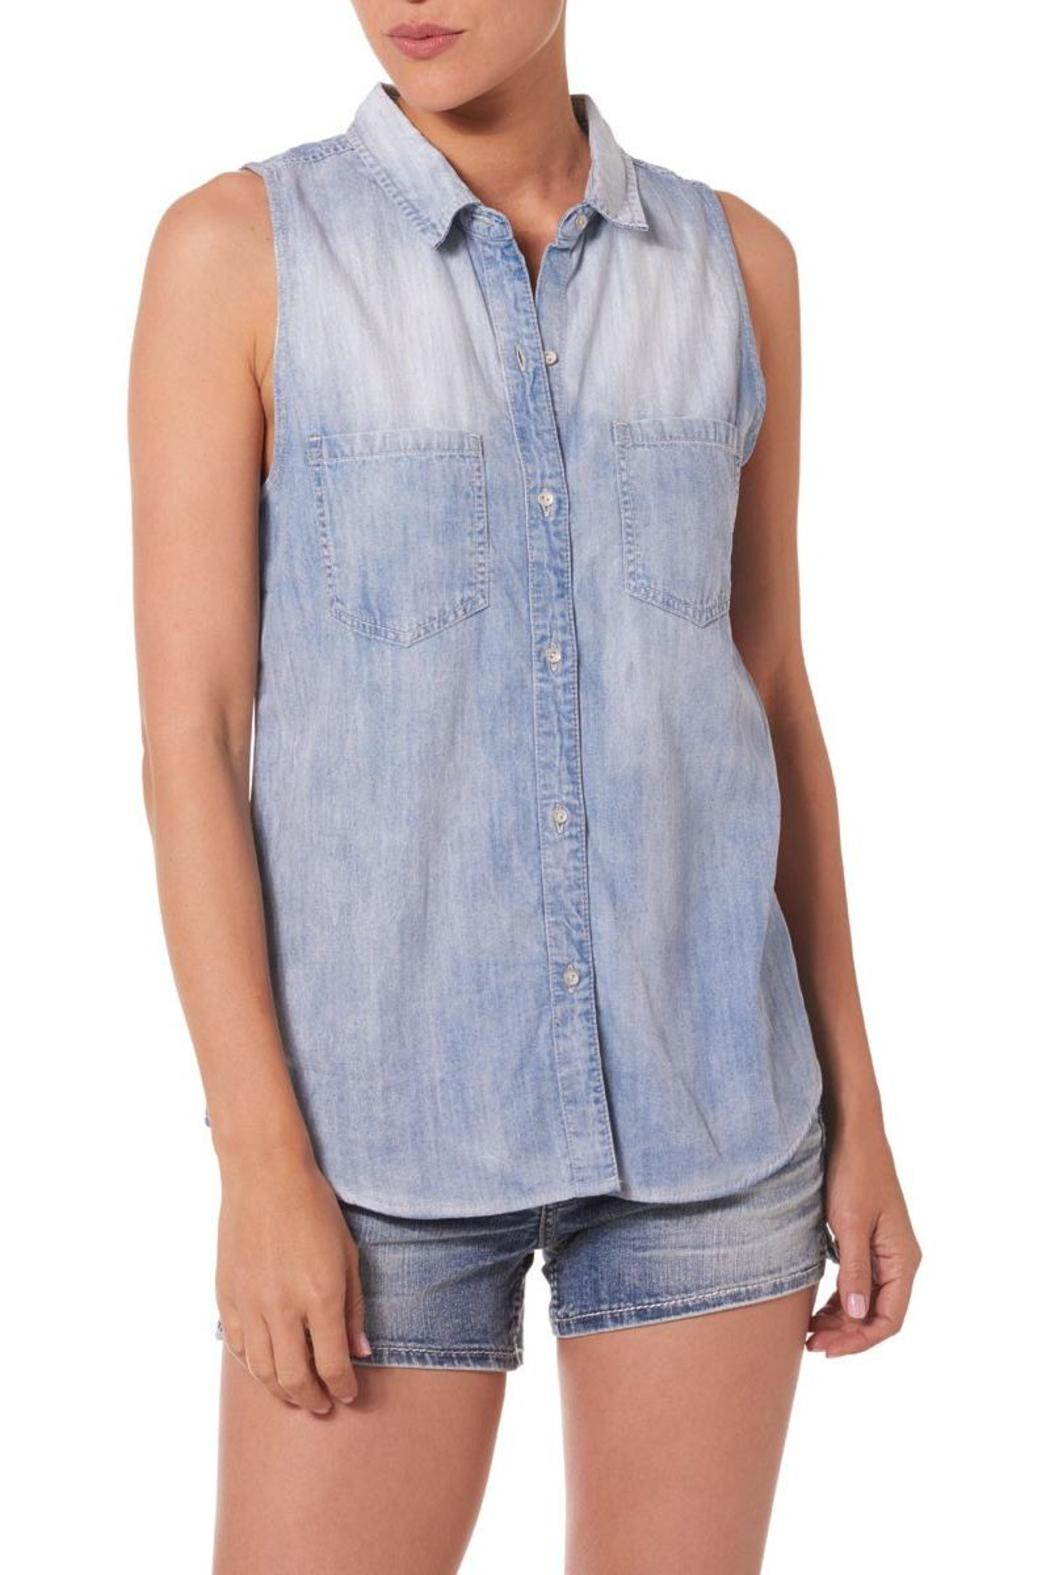 Silver Jeans Co. Plaid-Back Chambray Top - Front Cropped Image